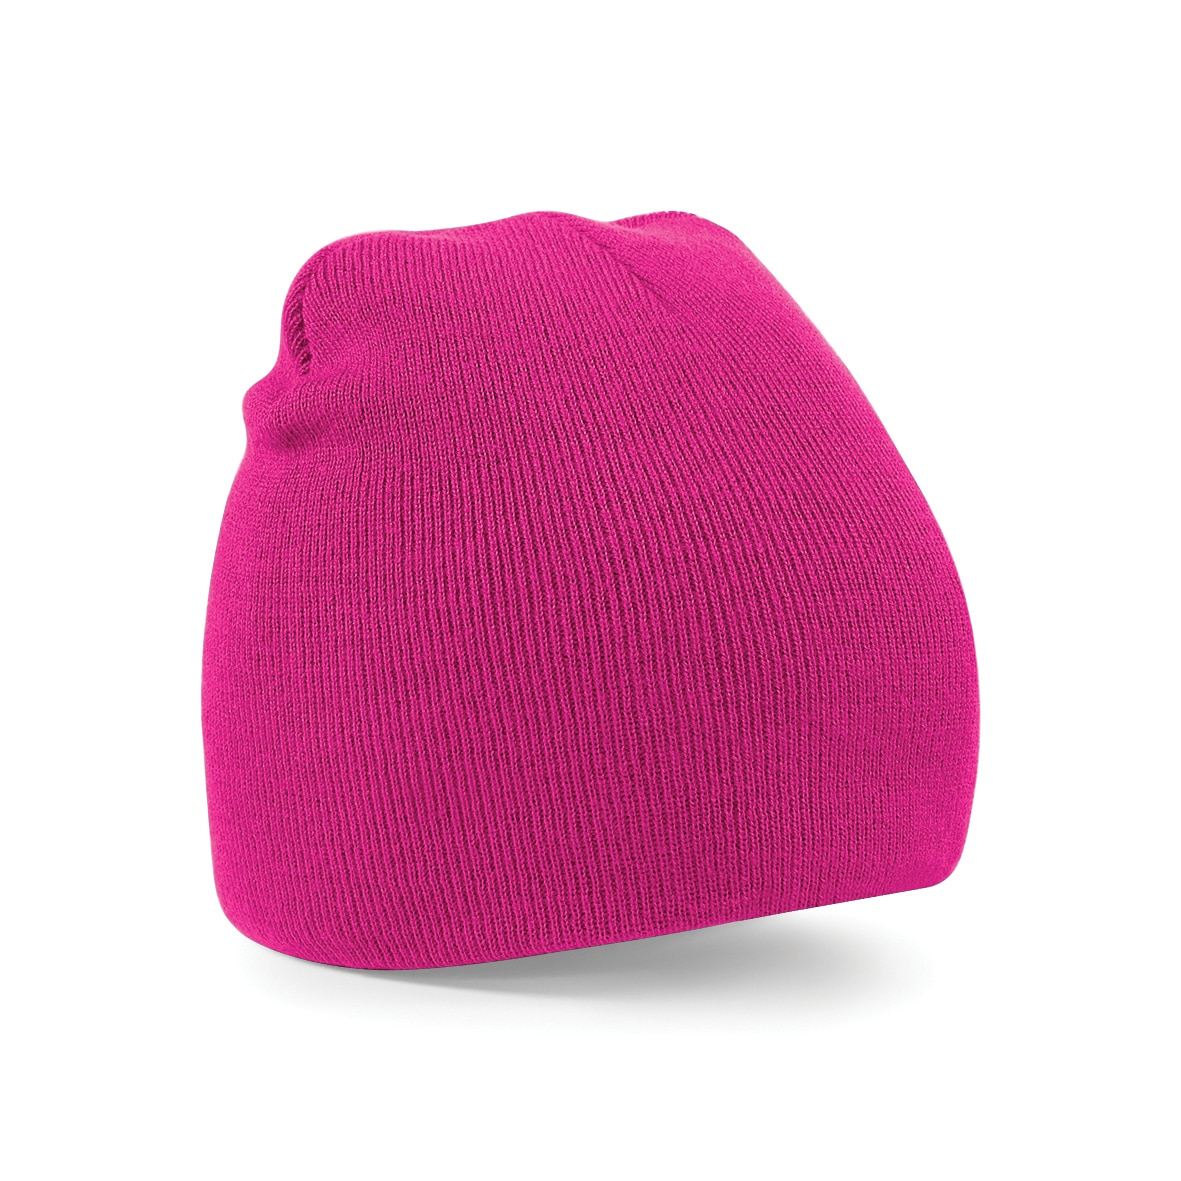 Fuchsia Pink Embroidered Personalised Beanies from Jageto Embroidery and Print in Essex, UK